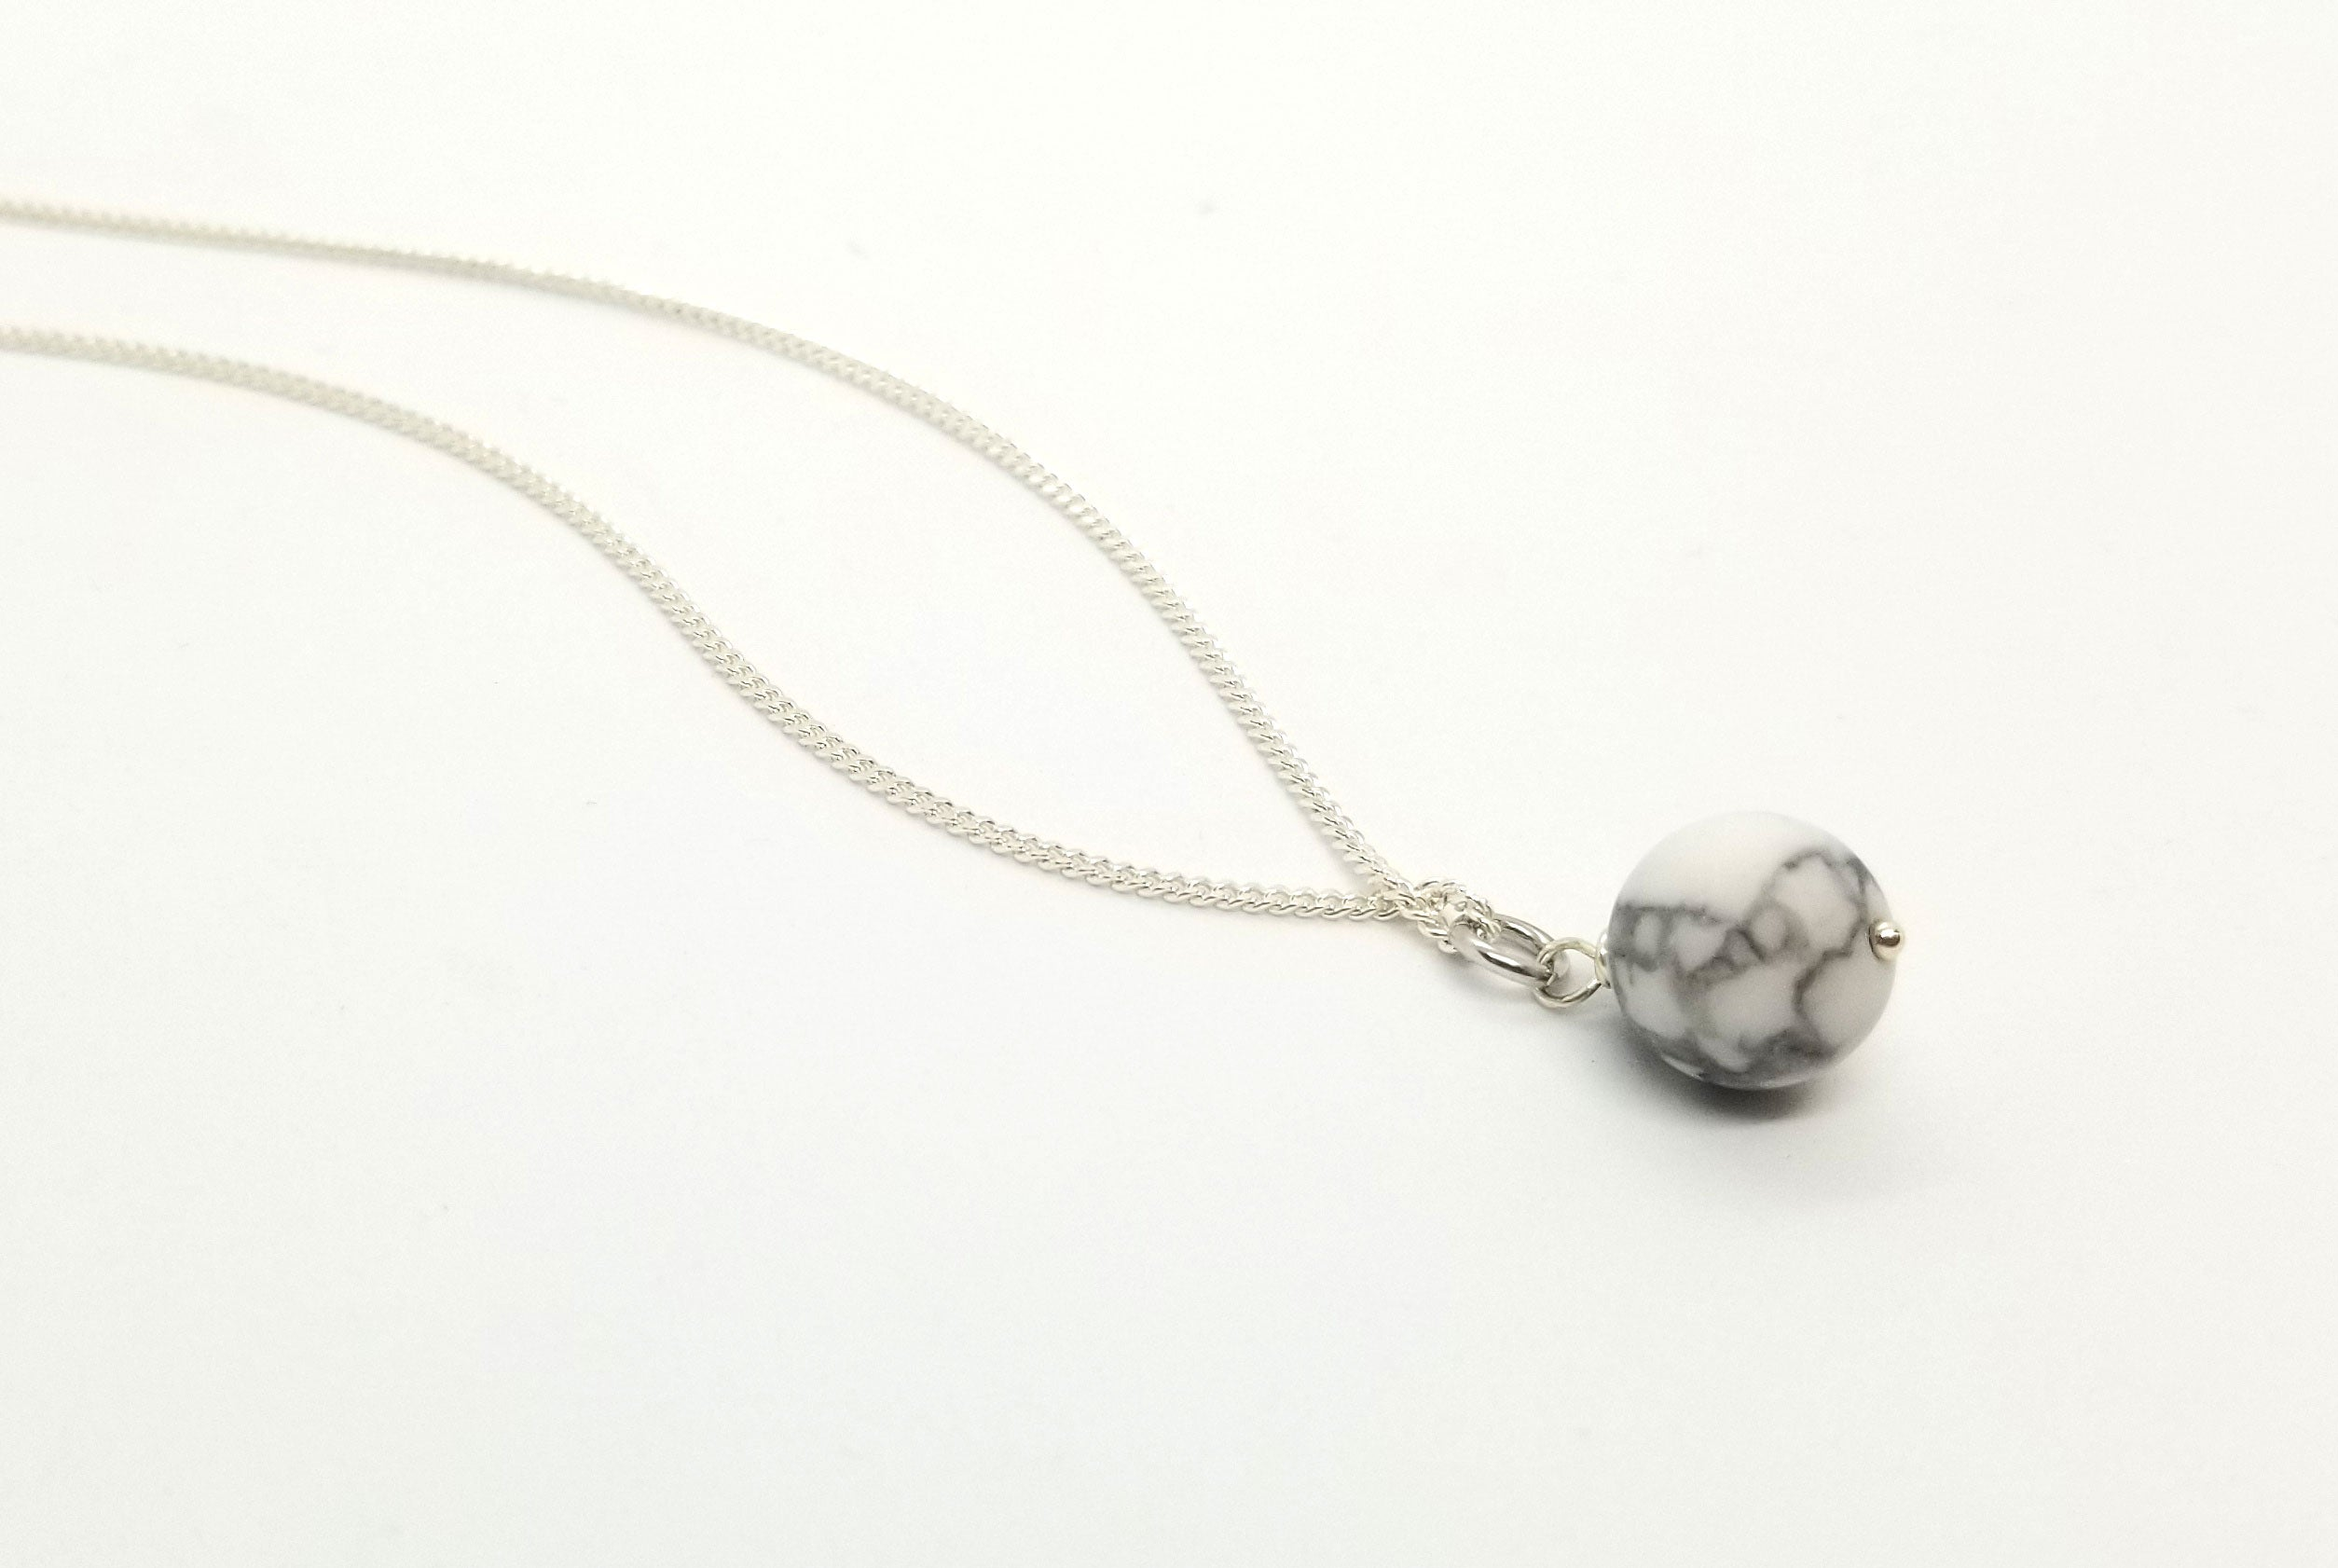 Silver 10mm Howlite Removable Charm Necklace